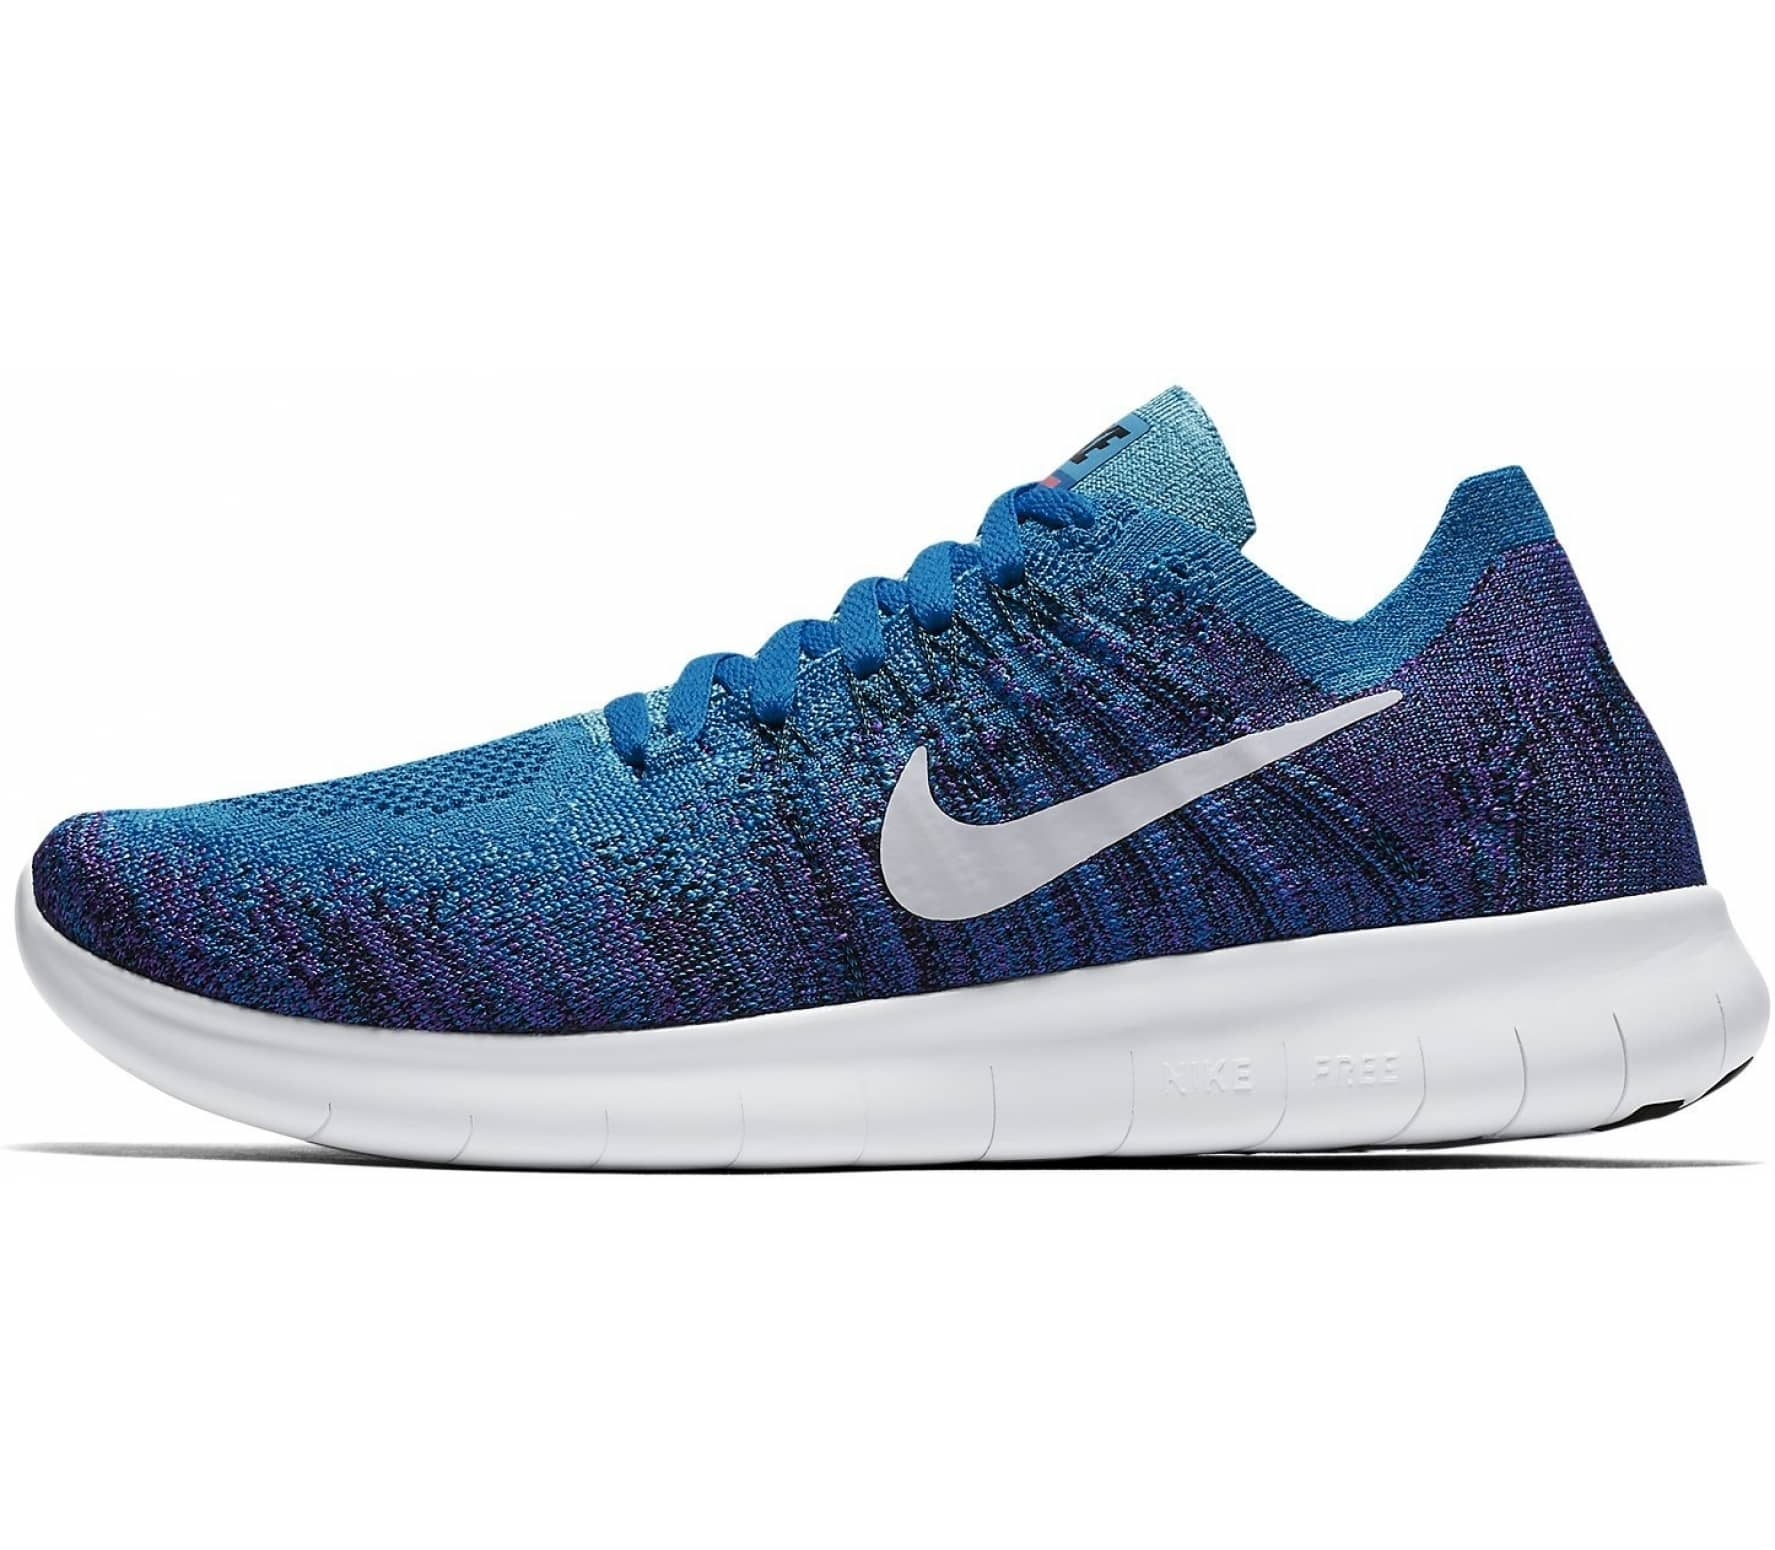 official photos fa5bf 2dc55 Nike - Free RN Flyknit 2 (GS) Children running shoes (blue)